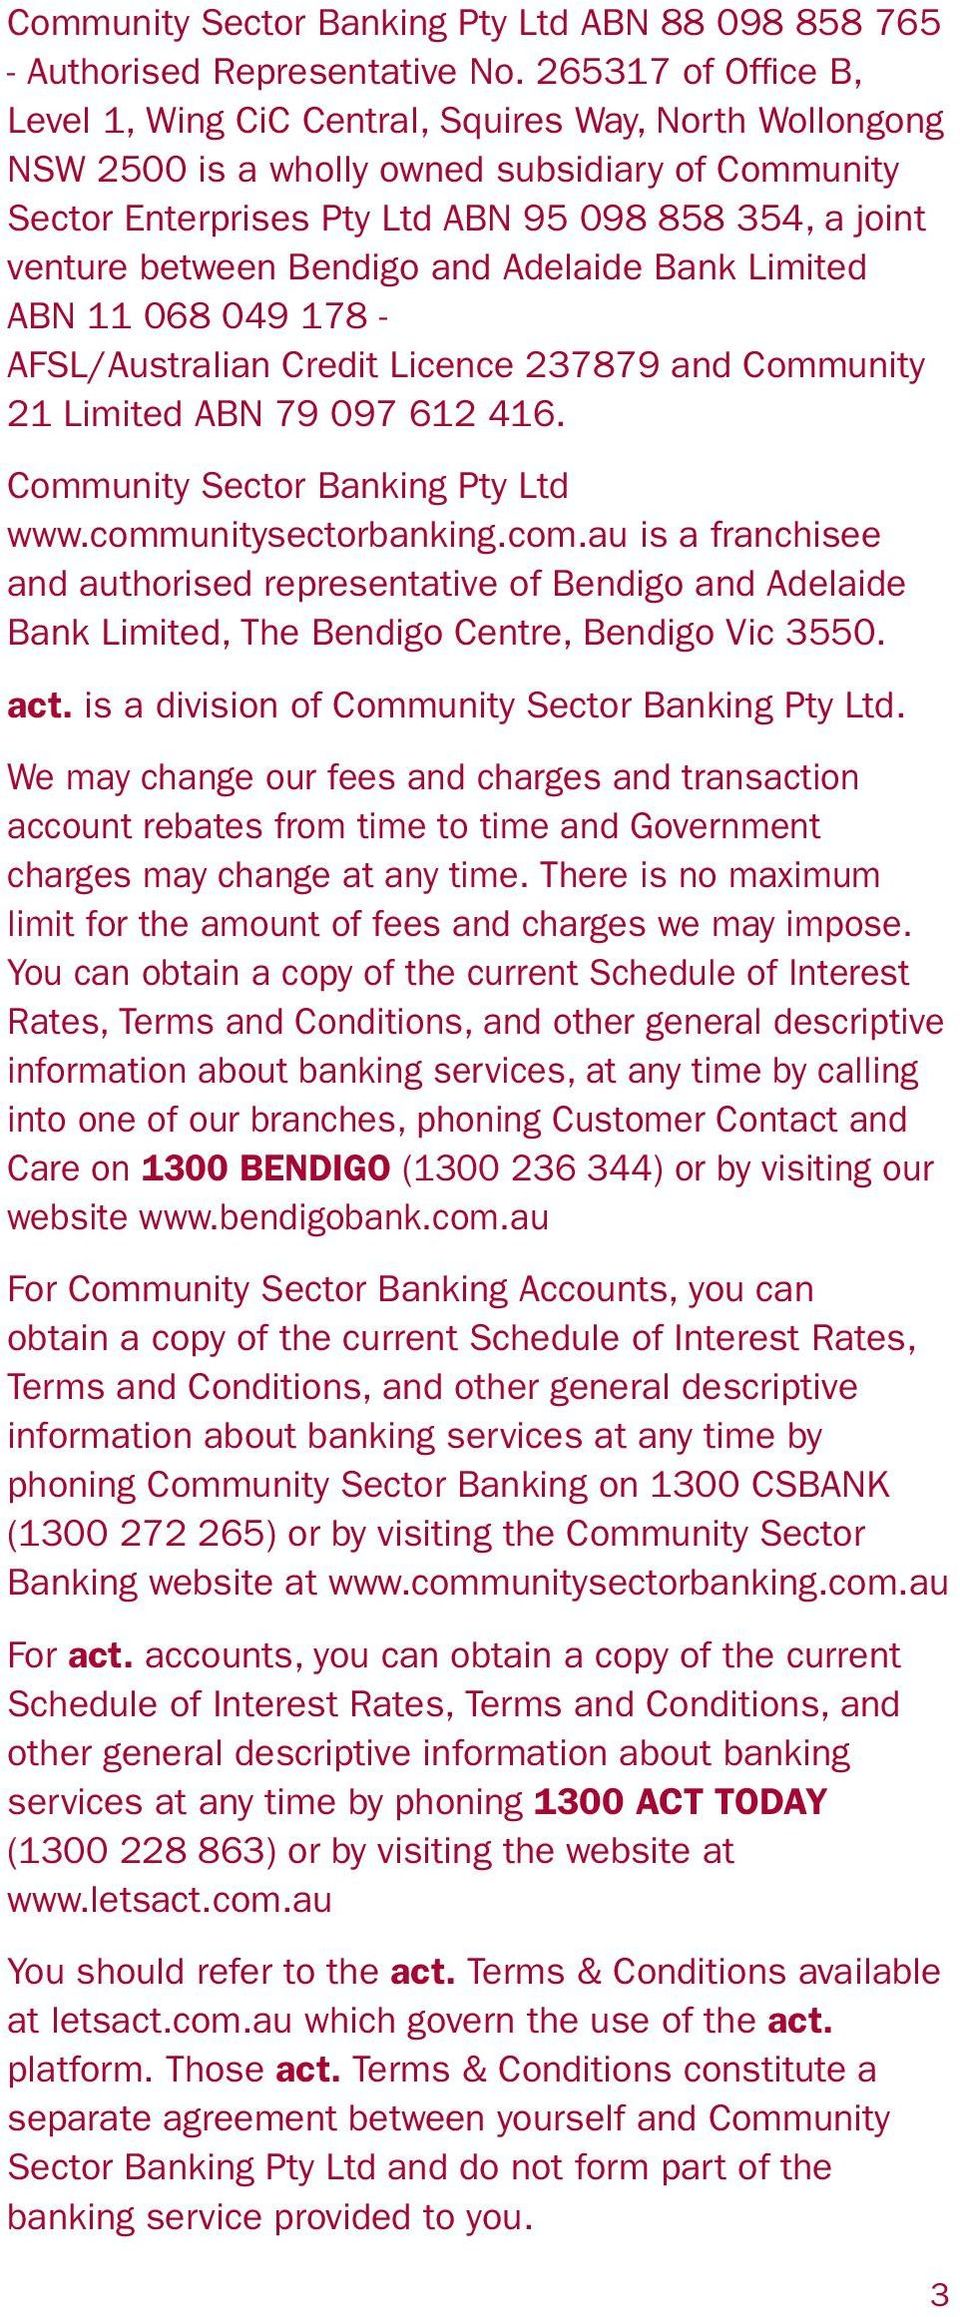 Bendigo and Adelaide Bank Limited ABN 11 068 049 178 - AFSL/Australian Credit Licence 237879 and Community 21 Limited ABN 79 097 612 416. Community Sector Banking Pty Ltd www.communitysectorbanking.